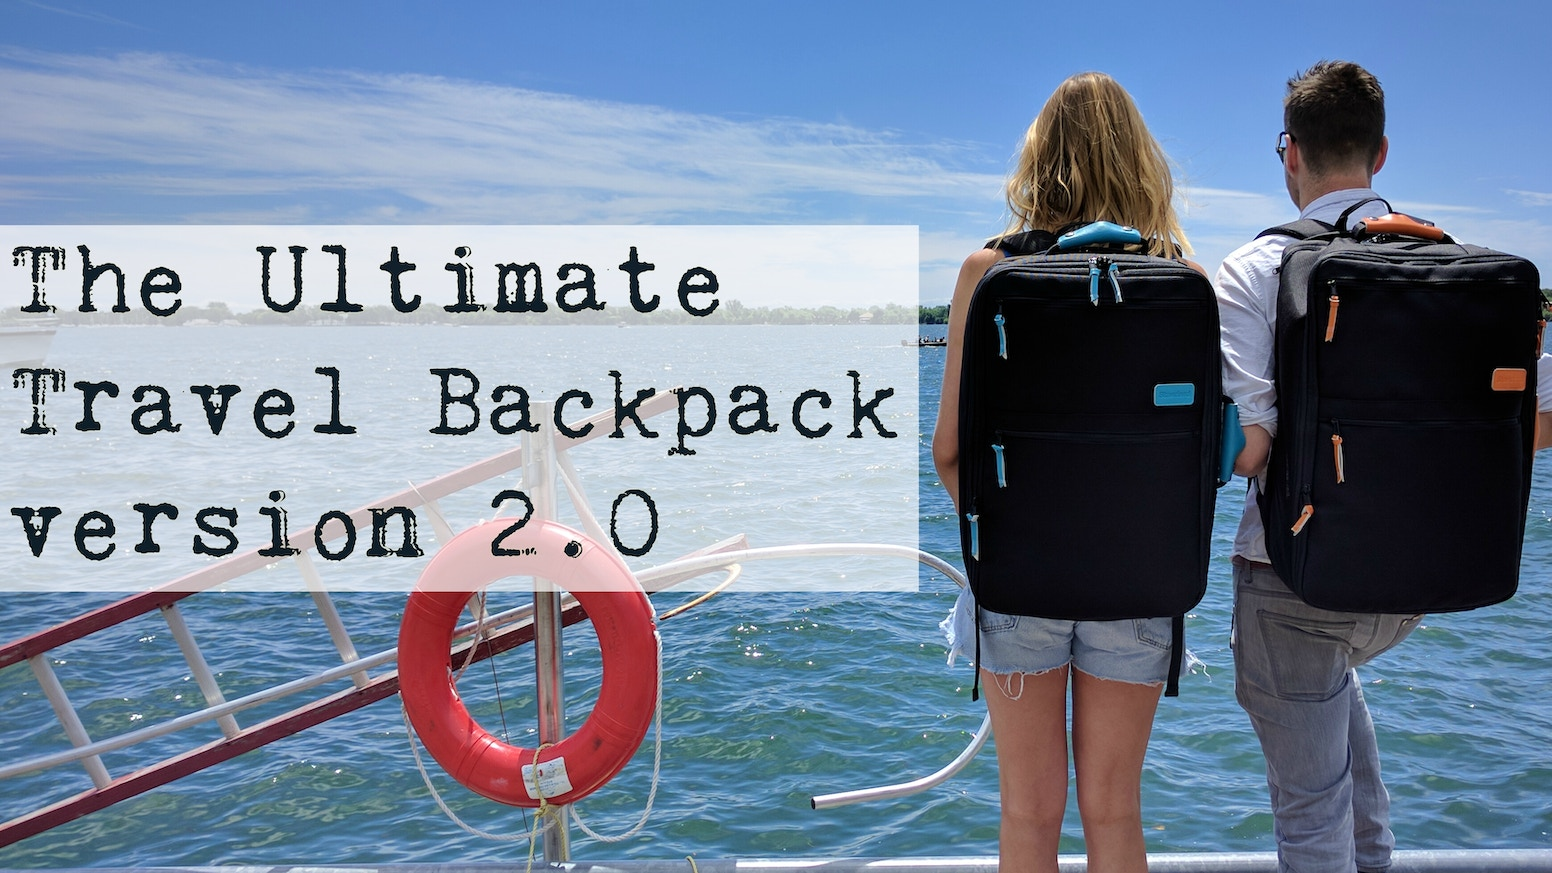 154c7e3ed055 The Ultimate Backpack for Travellers is back! Designed to be the only travel  bag you